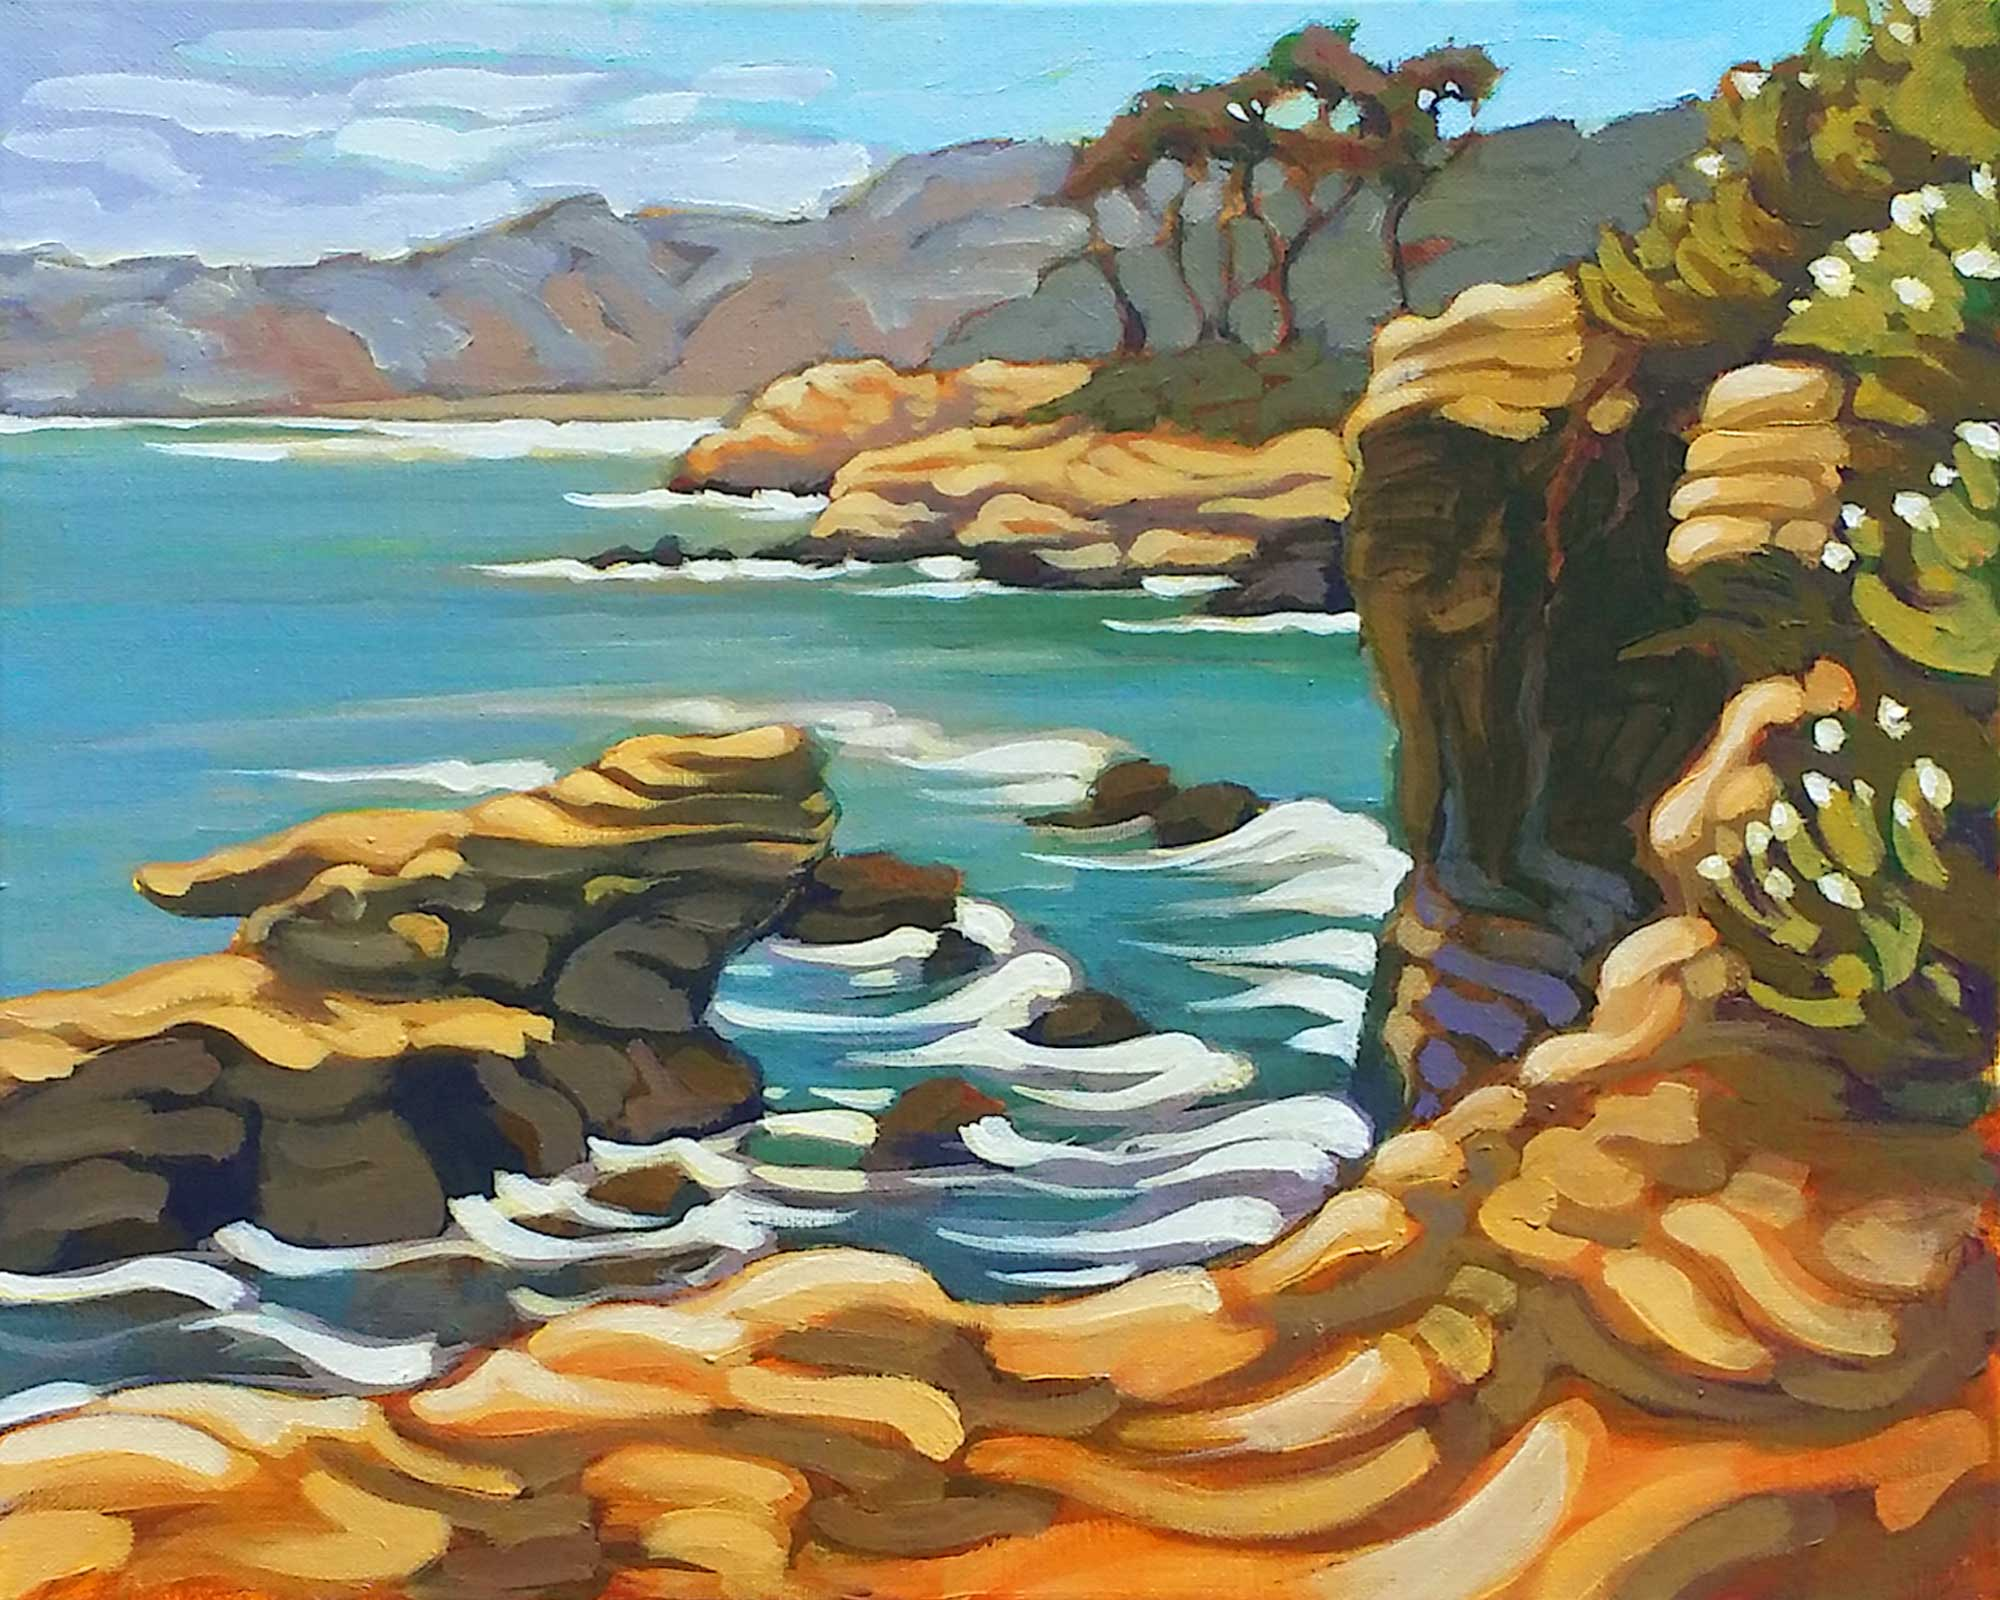 Plein air landscape painting of weather rock formations at La Jolla Cove in San Diego on the southern California coast